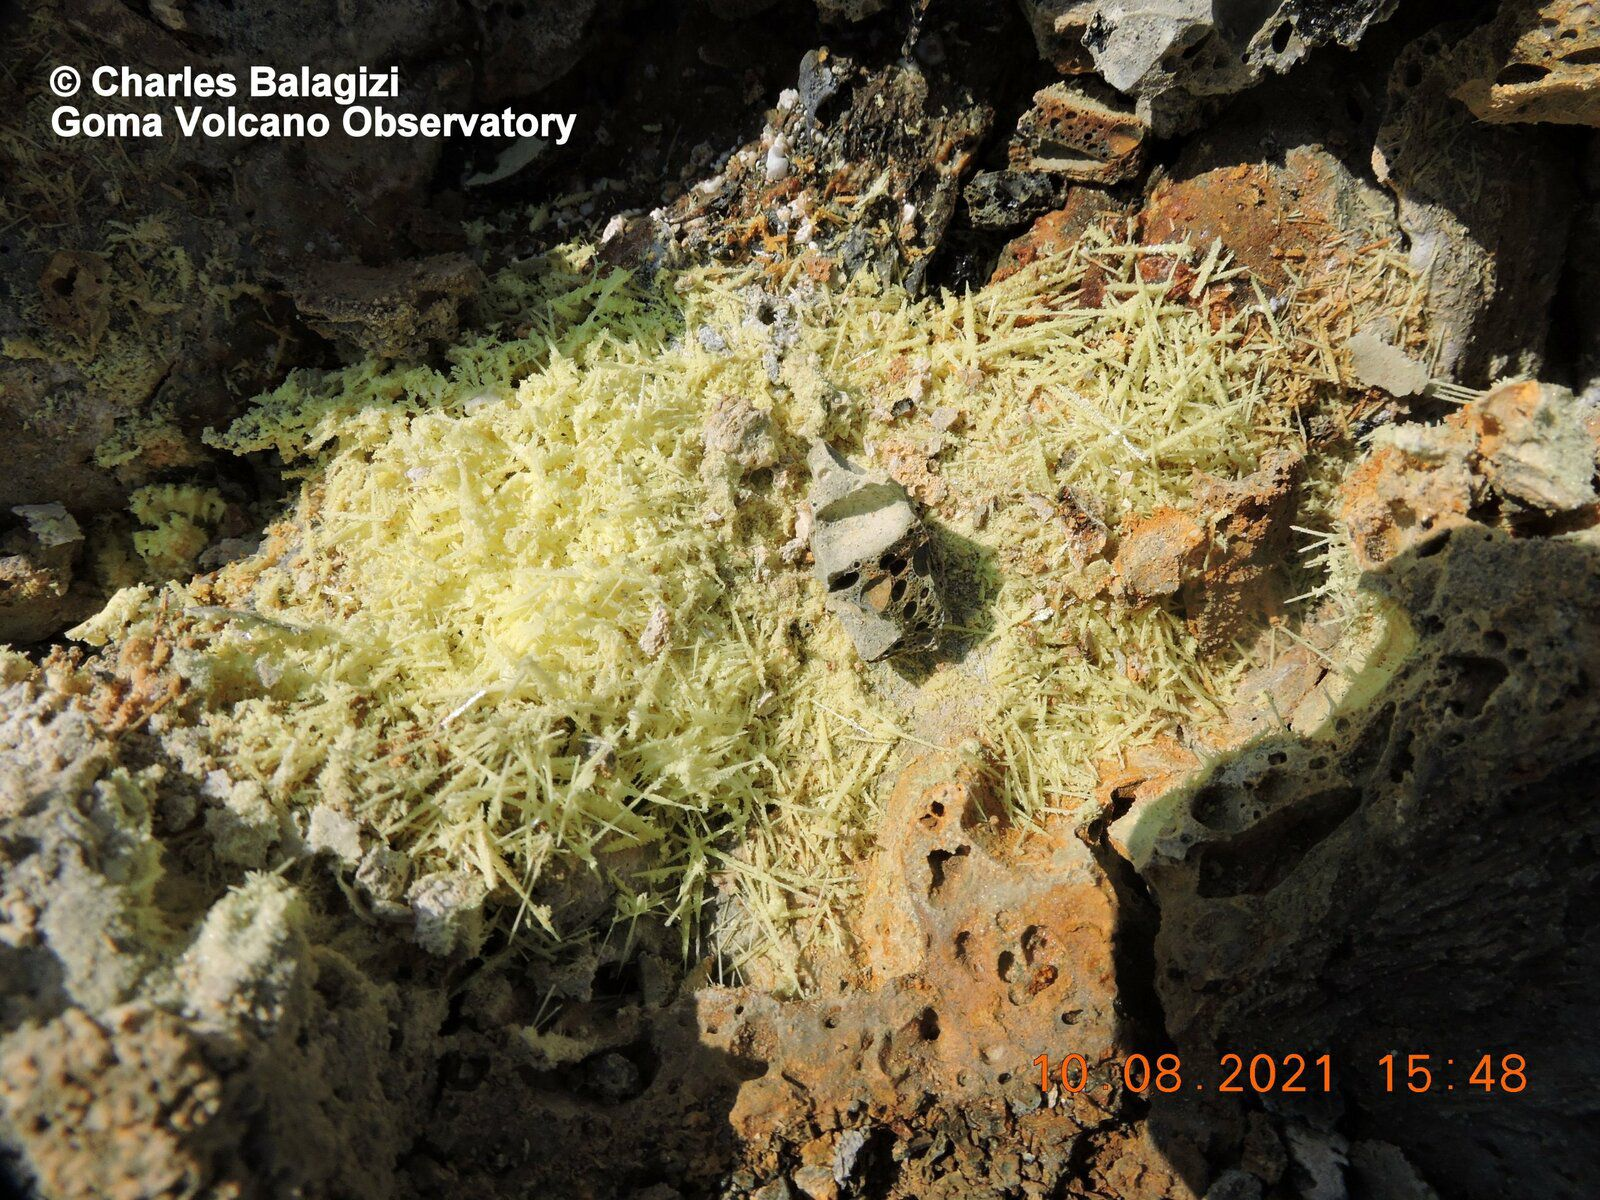 Nyiragongo - toxic deposits on the lava flows from the last eruption - photos © Charles Balagizi